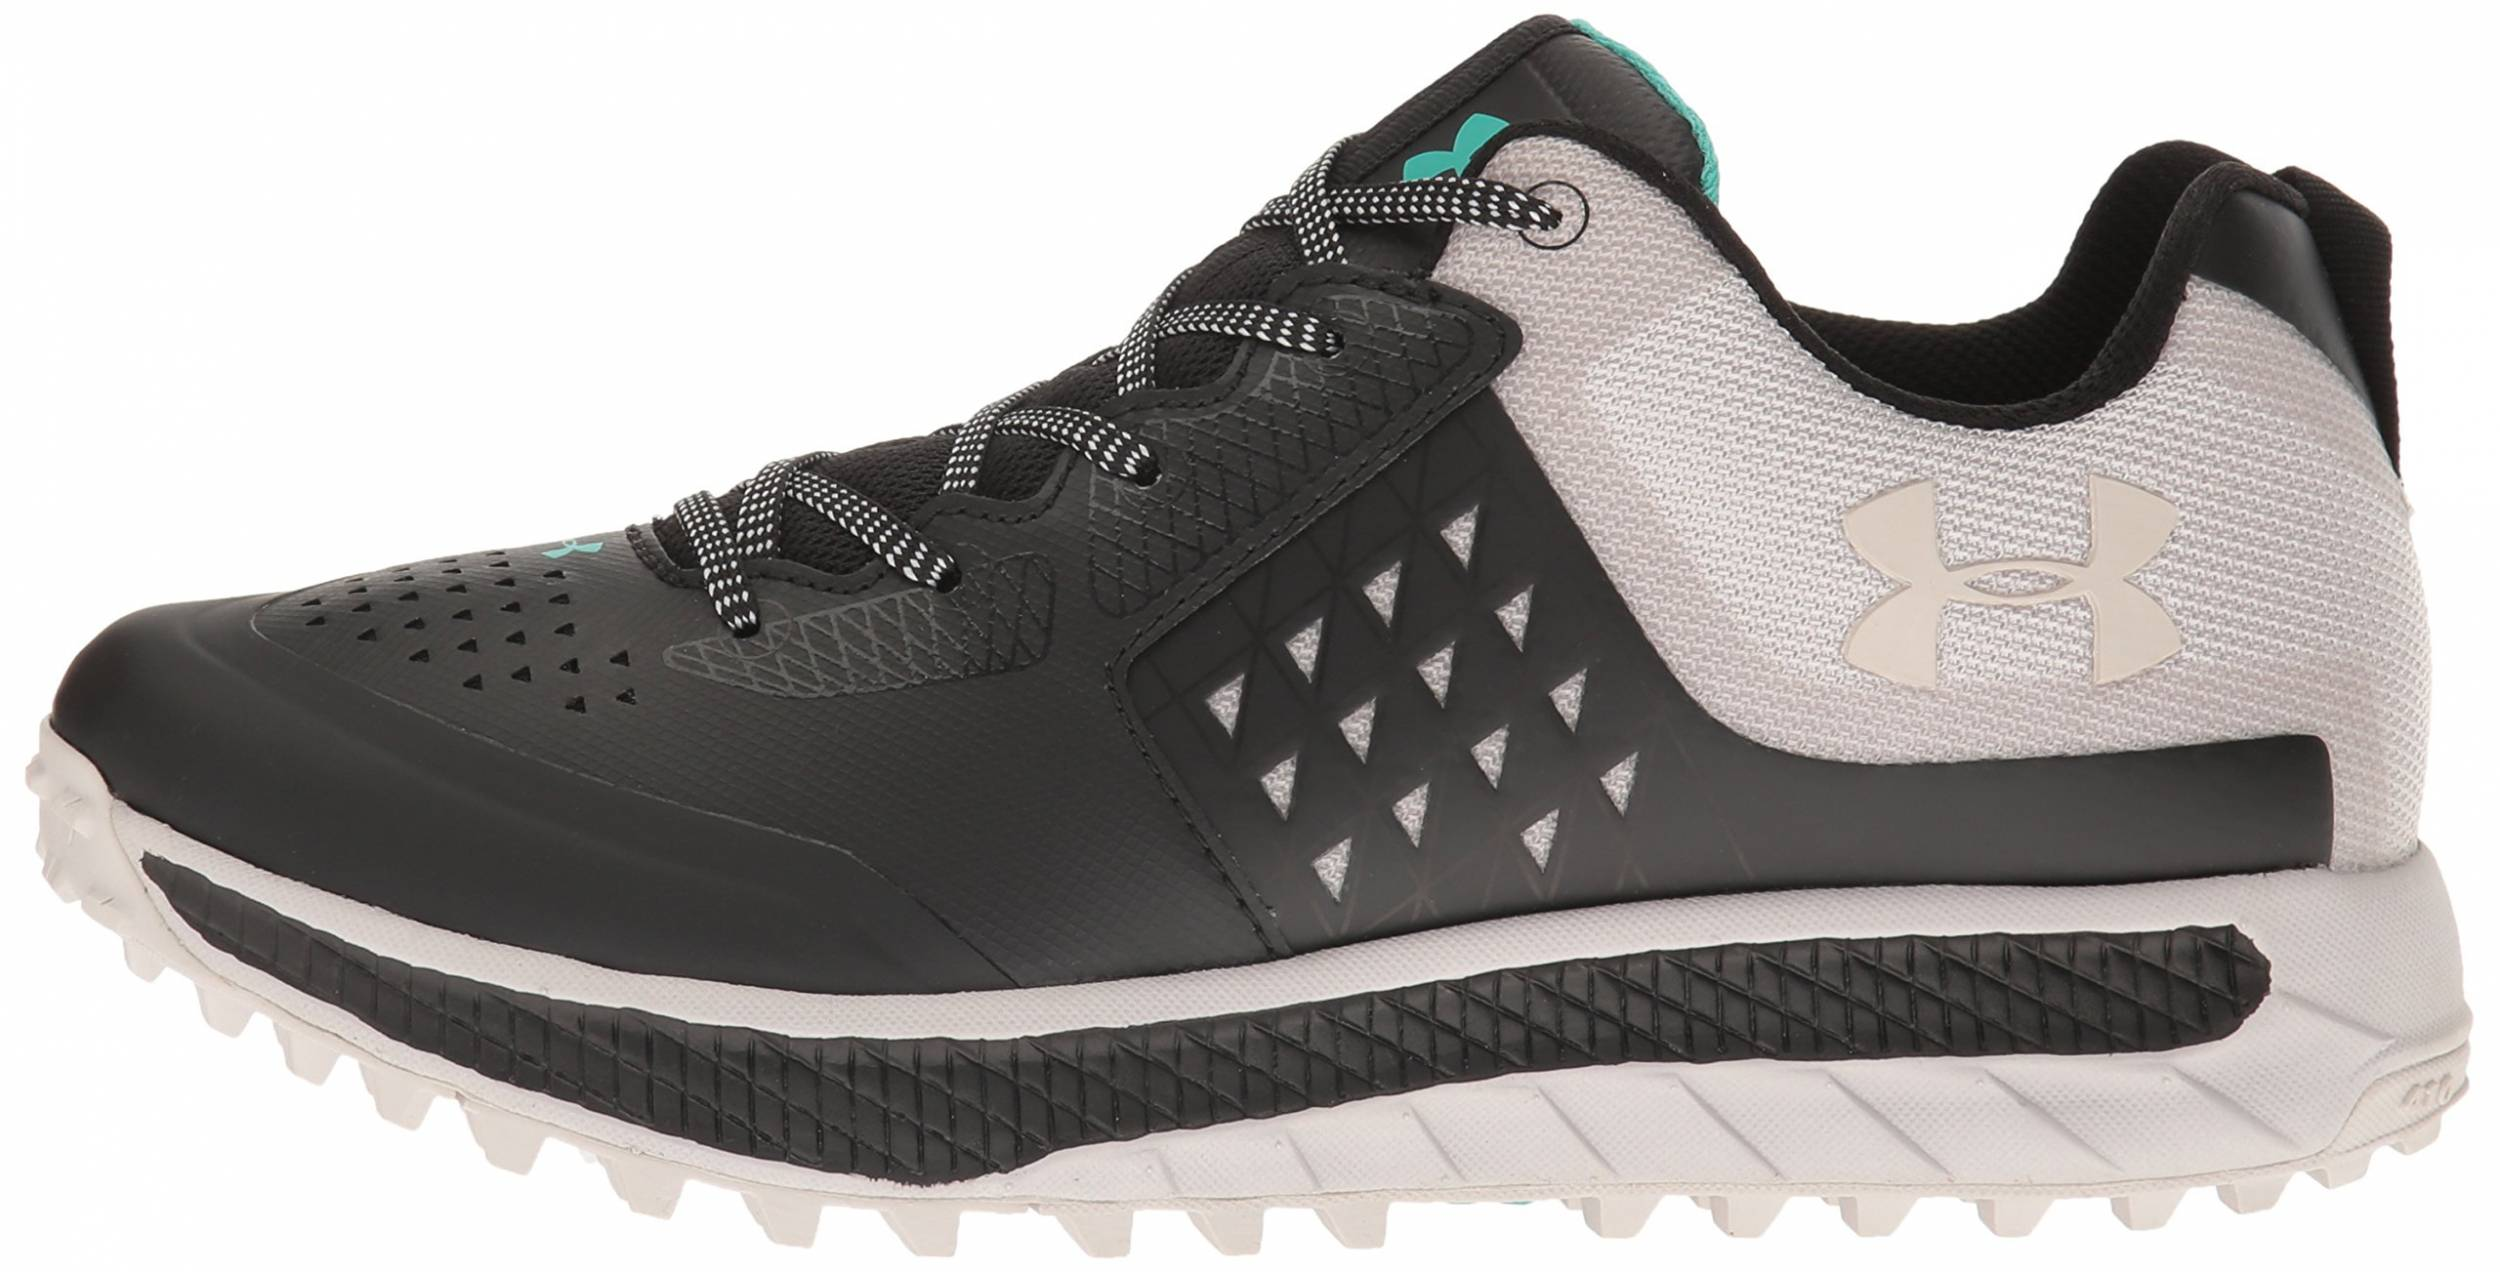 mineral transmisión loto  Save 27% on Under Armour Trail Running Shoes (15 Models in Stock) |  RunRepeat